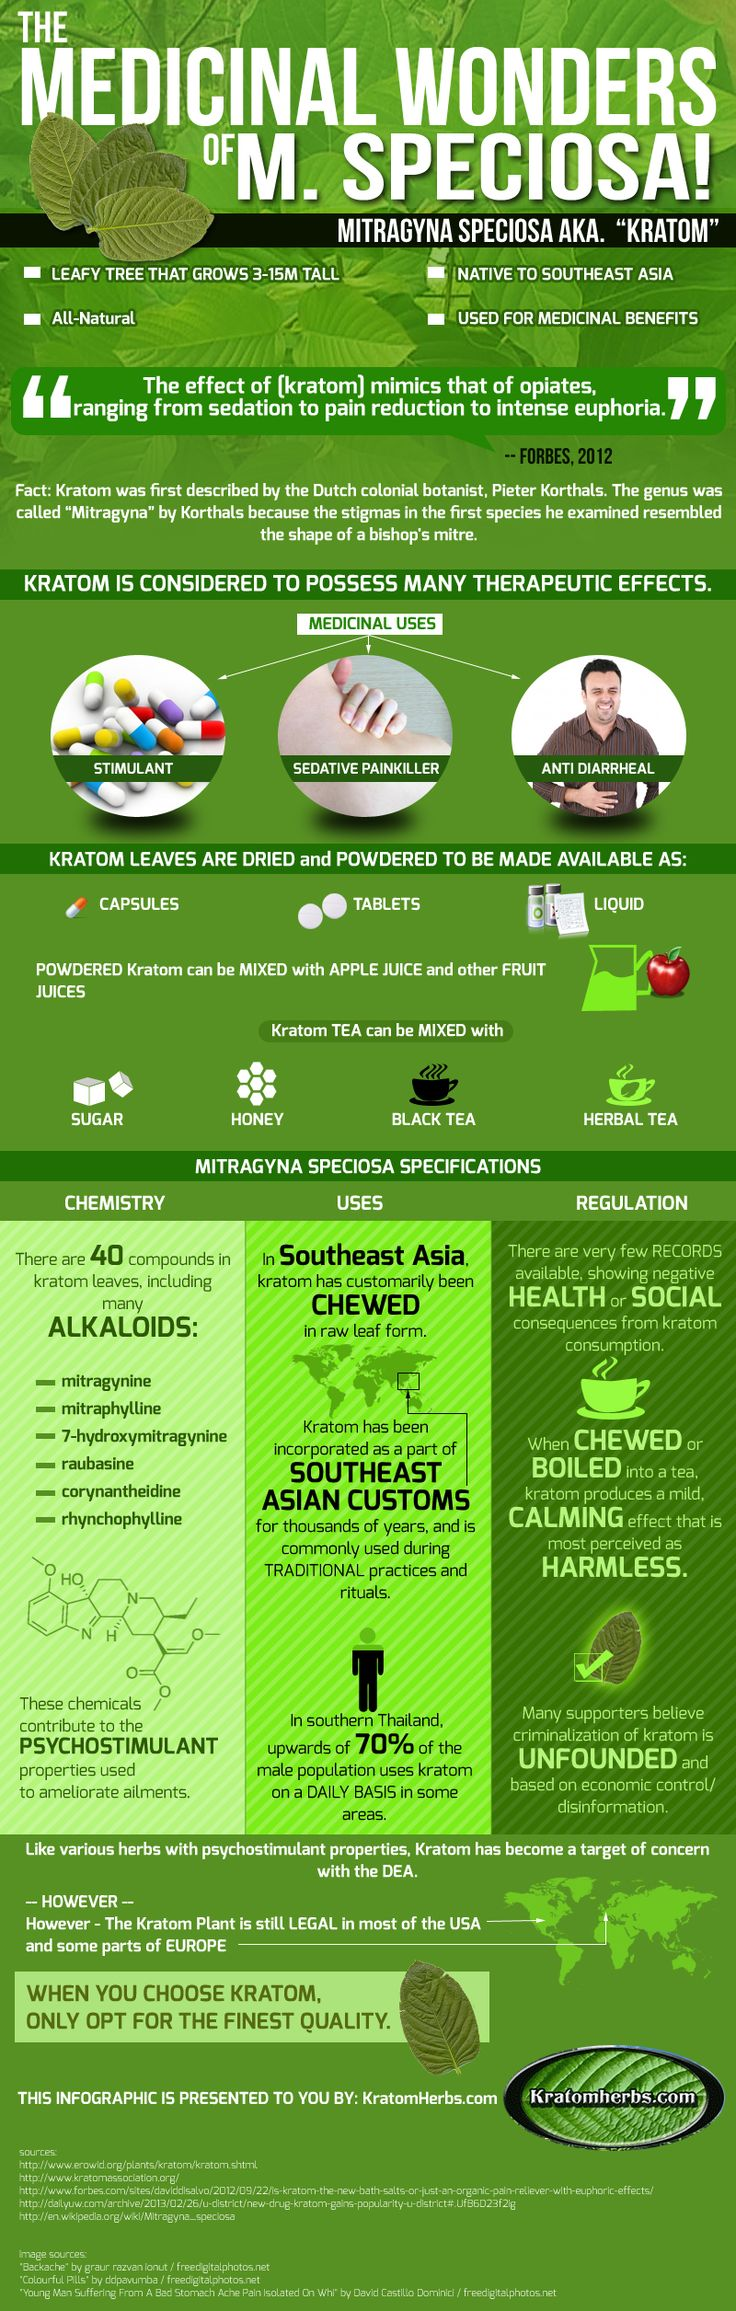 http://www.kratomherbs.com/what_is_kratom_buy_kratom_online_s/1837.htm The Medicinal Wonders of Mitragyna Speciosa Kratom [Infographic]